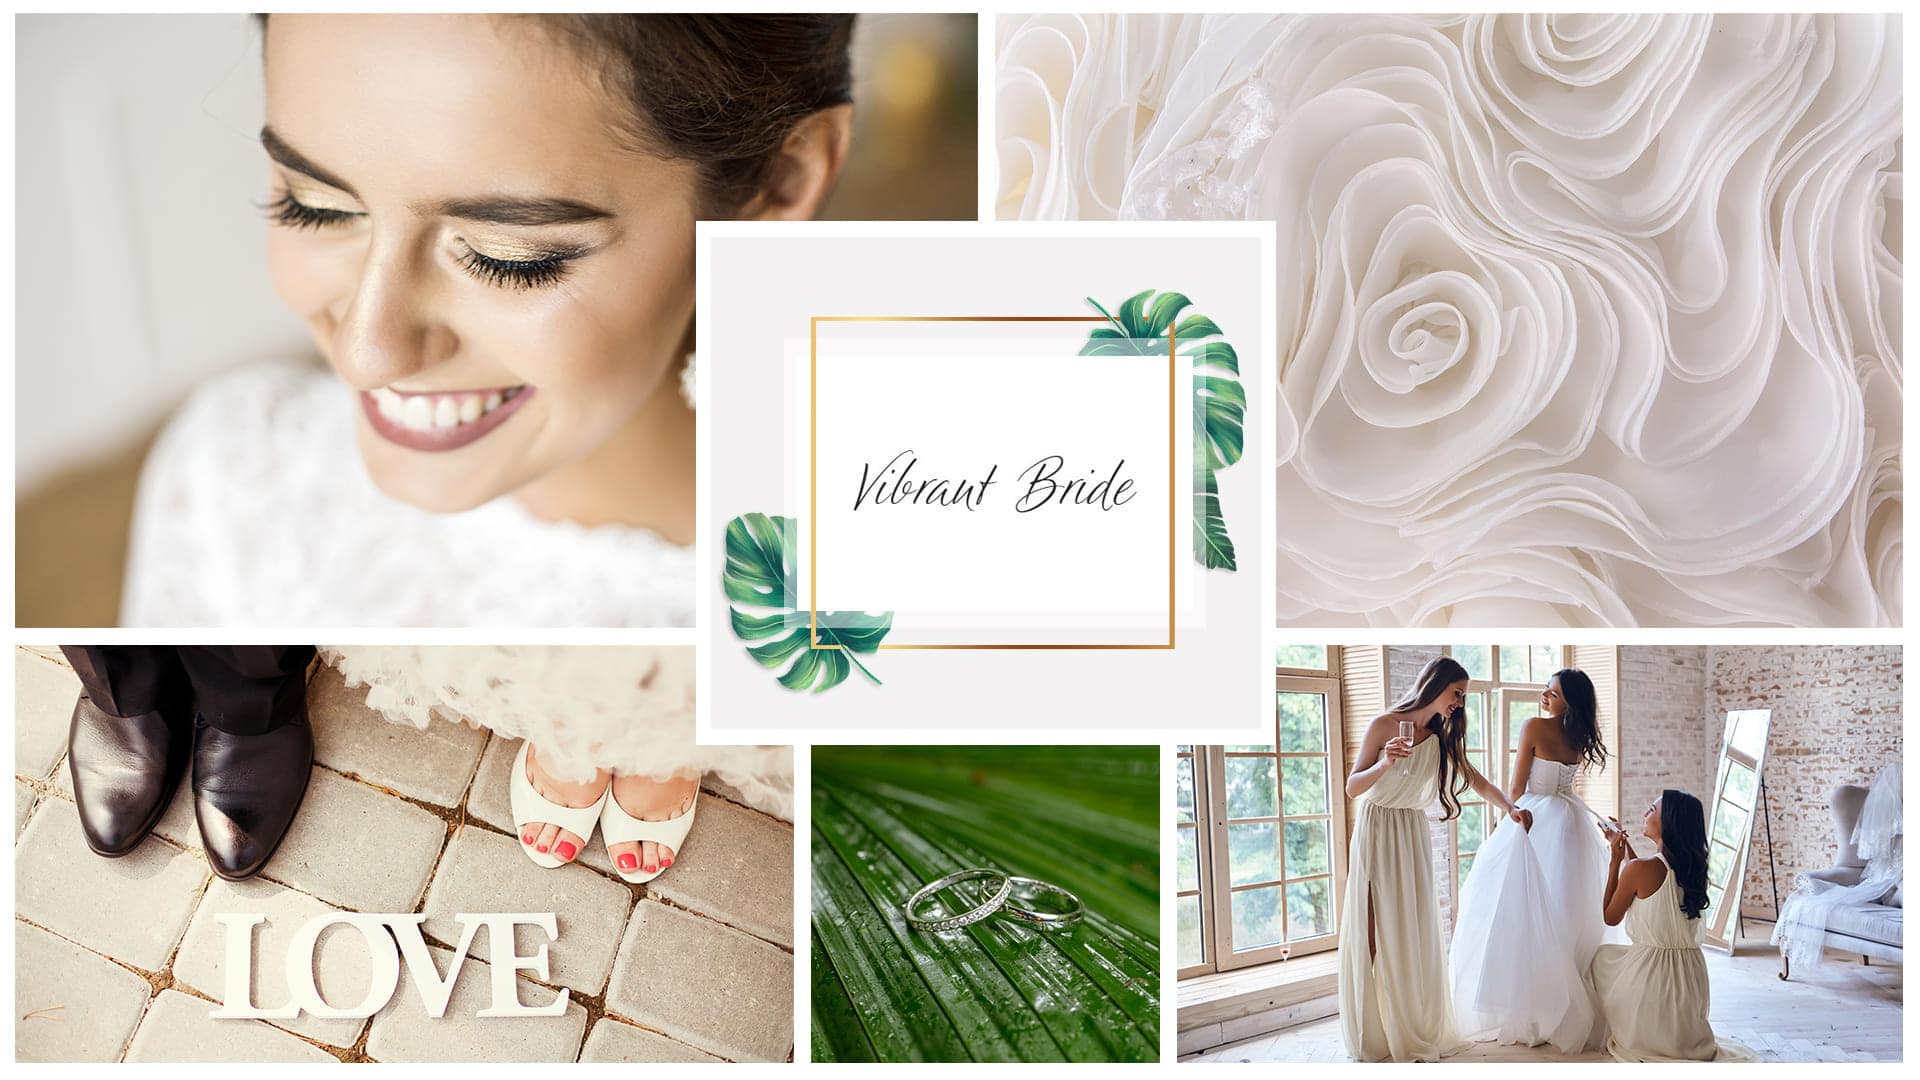 Bridal Vibrant Bride packages